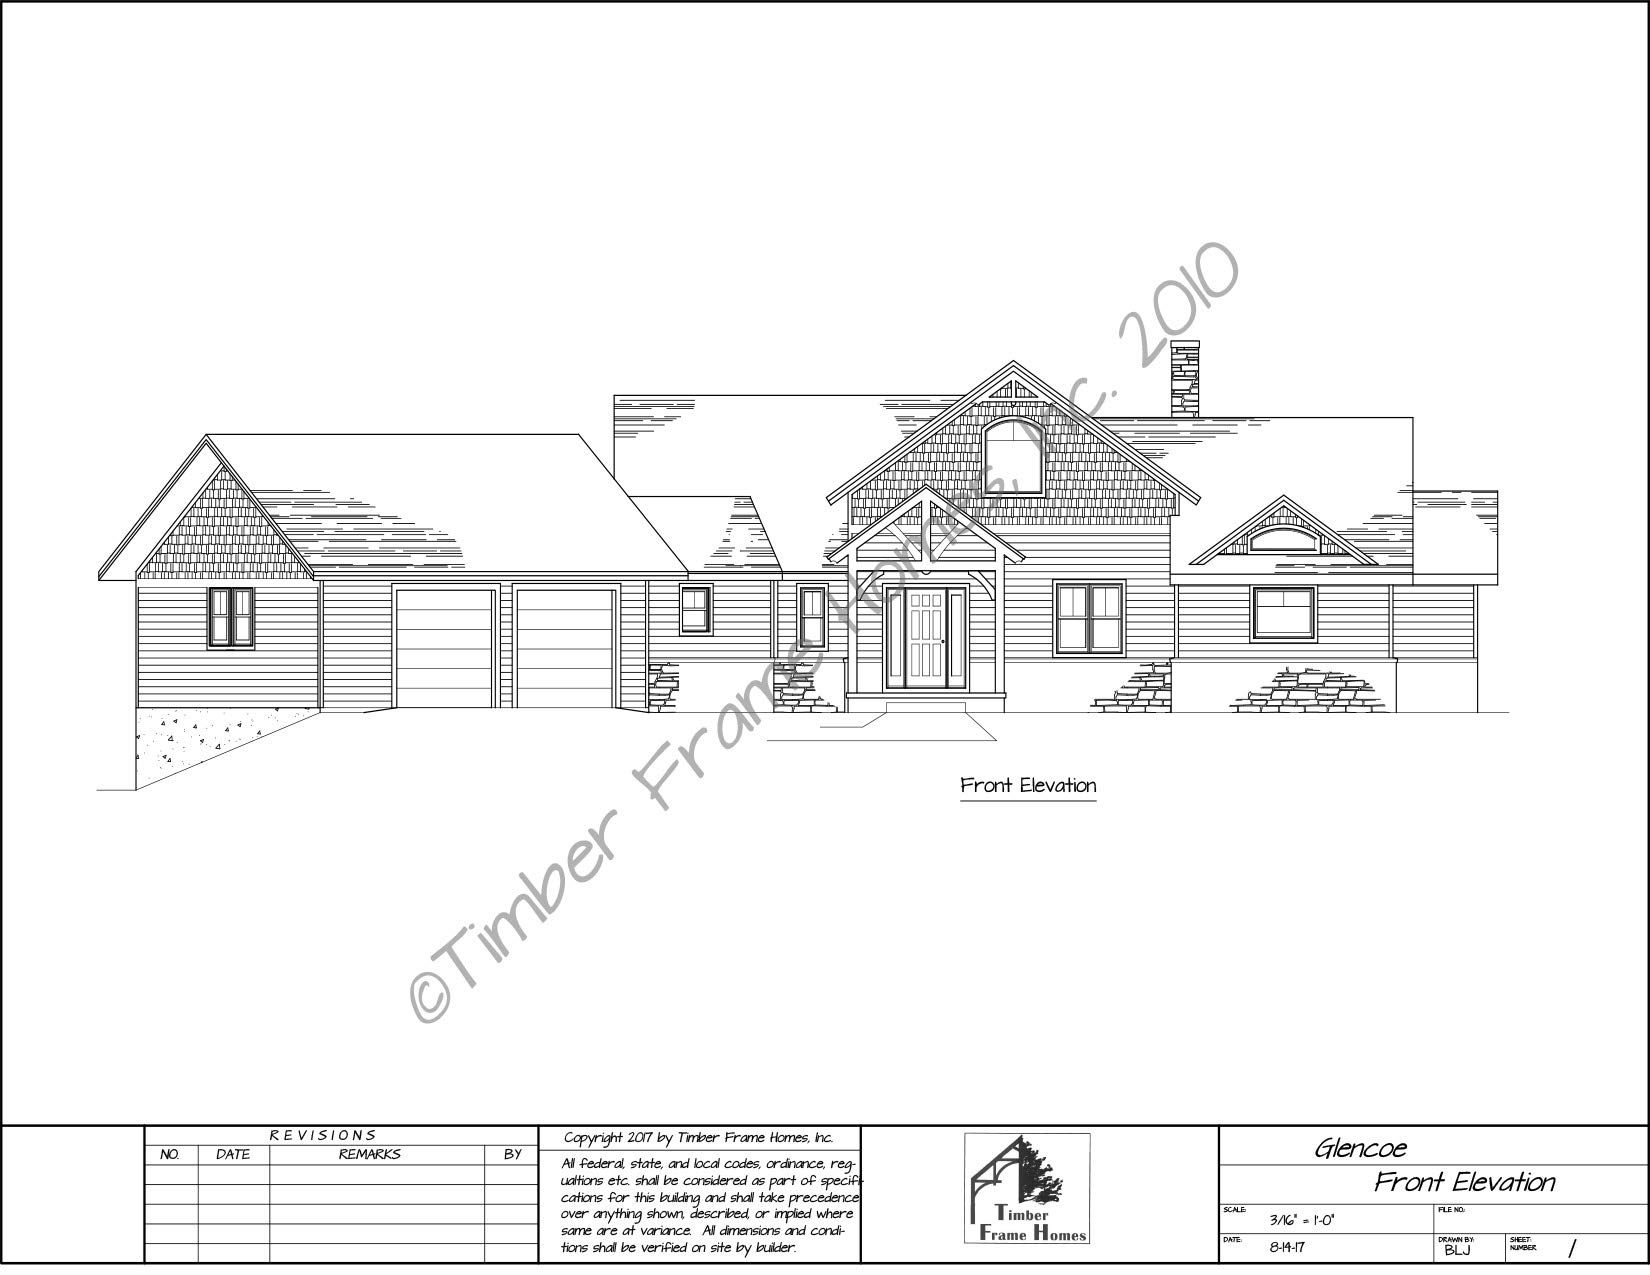 Home Plans - The Glencoe Timber Frame (DESIGN PROOF) by TimberStead